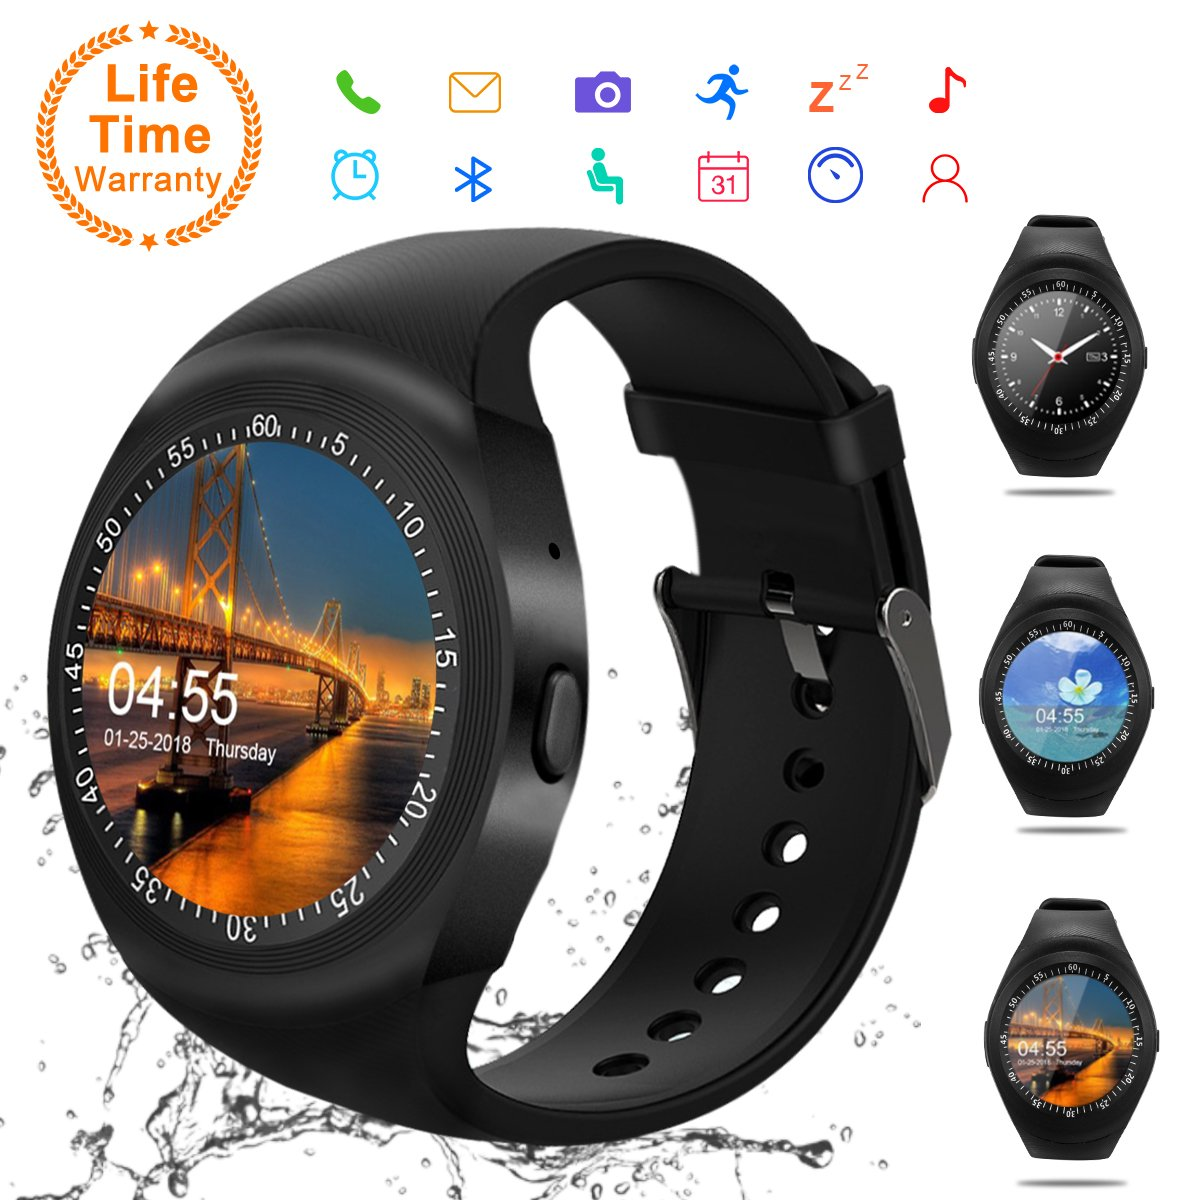 Android Smartwatch Bluetooth,Impermeable Reloj Inteligente,Bluetooth Tactil Telefono Smart Watch Sport Fitness Tracker Smartwatches Pulsera Inteligente para Android iOS iPhone Samsung Sony: Amazon.es: Electrónica